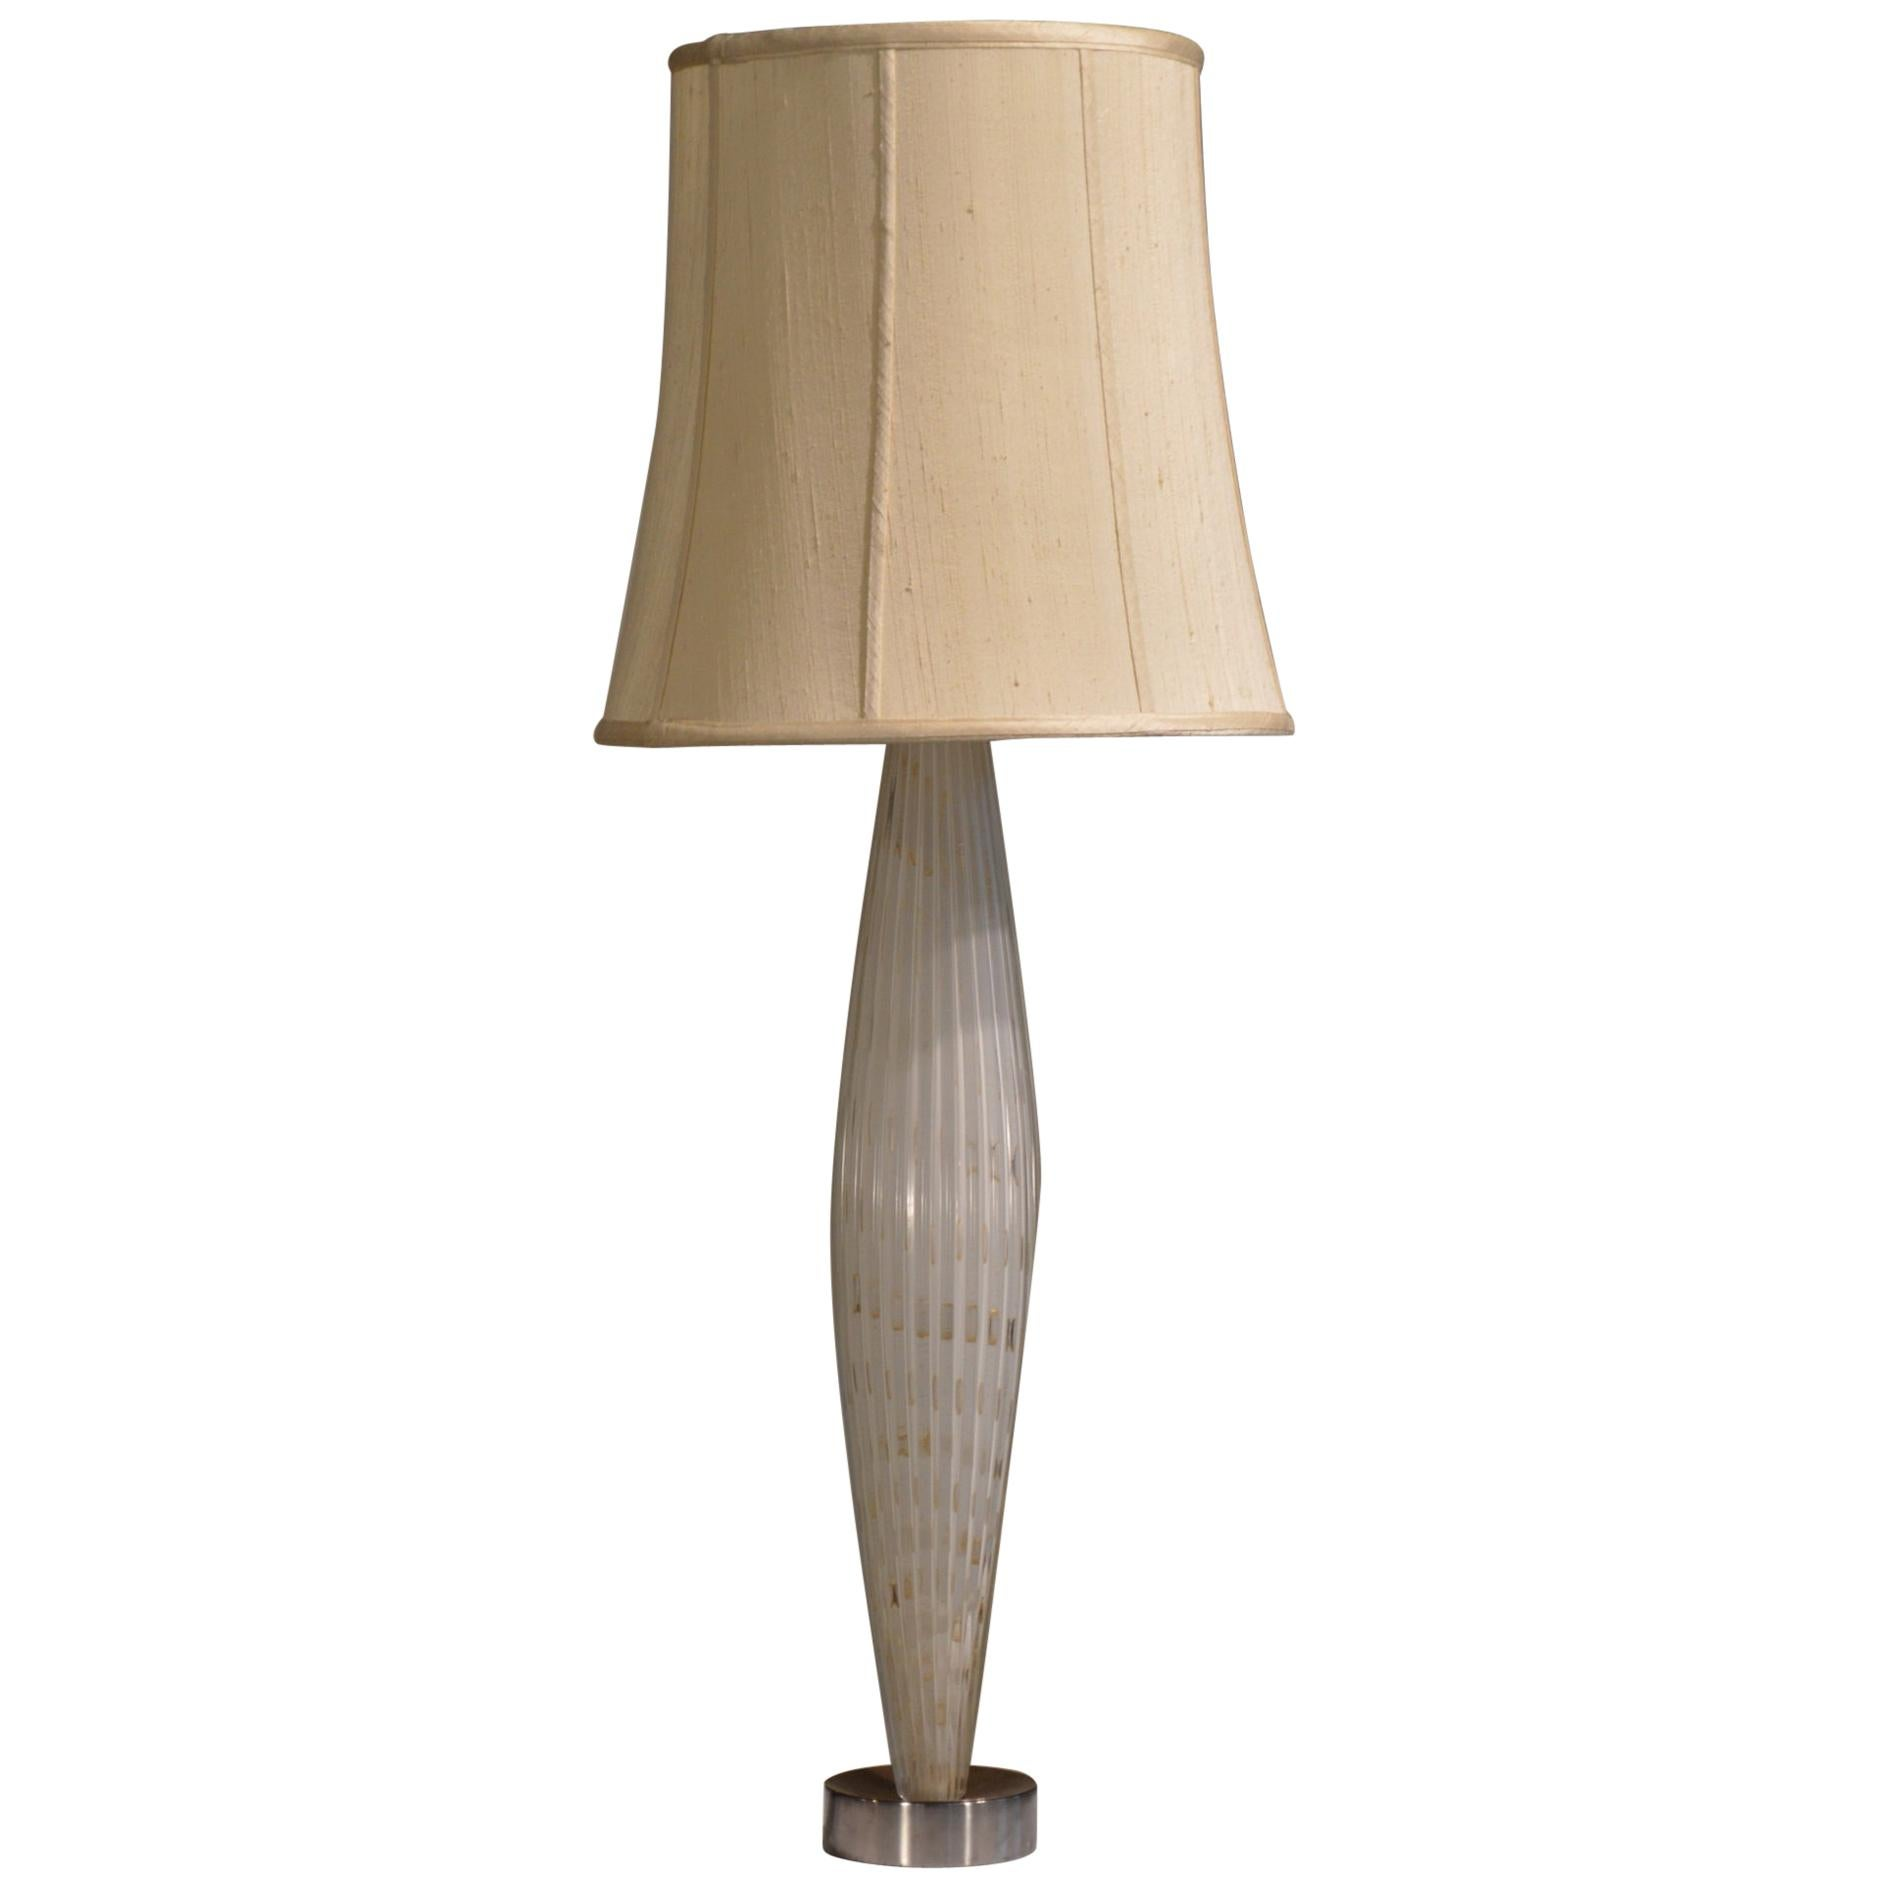 Alfredo Barbini Tall White and Gold Ribbed Murano Glass Table Lamp